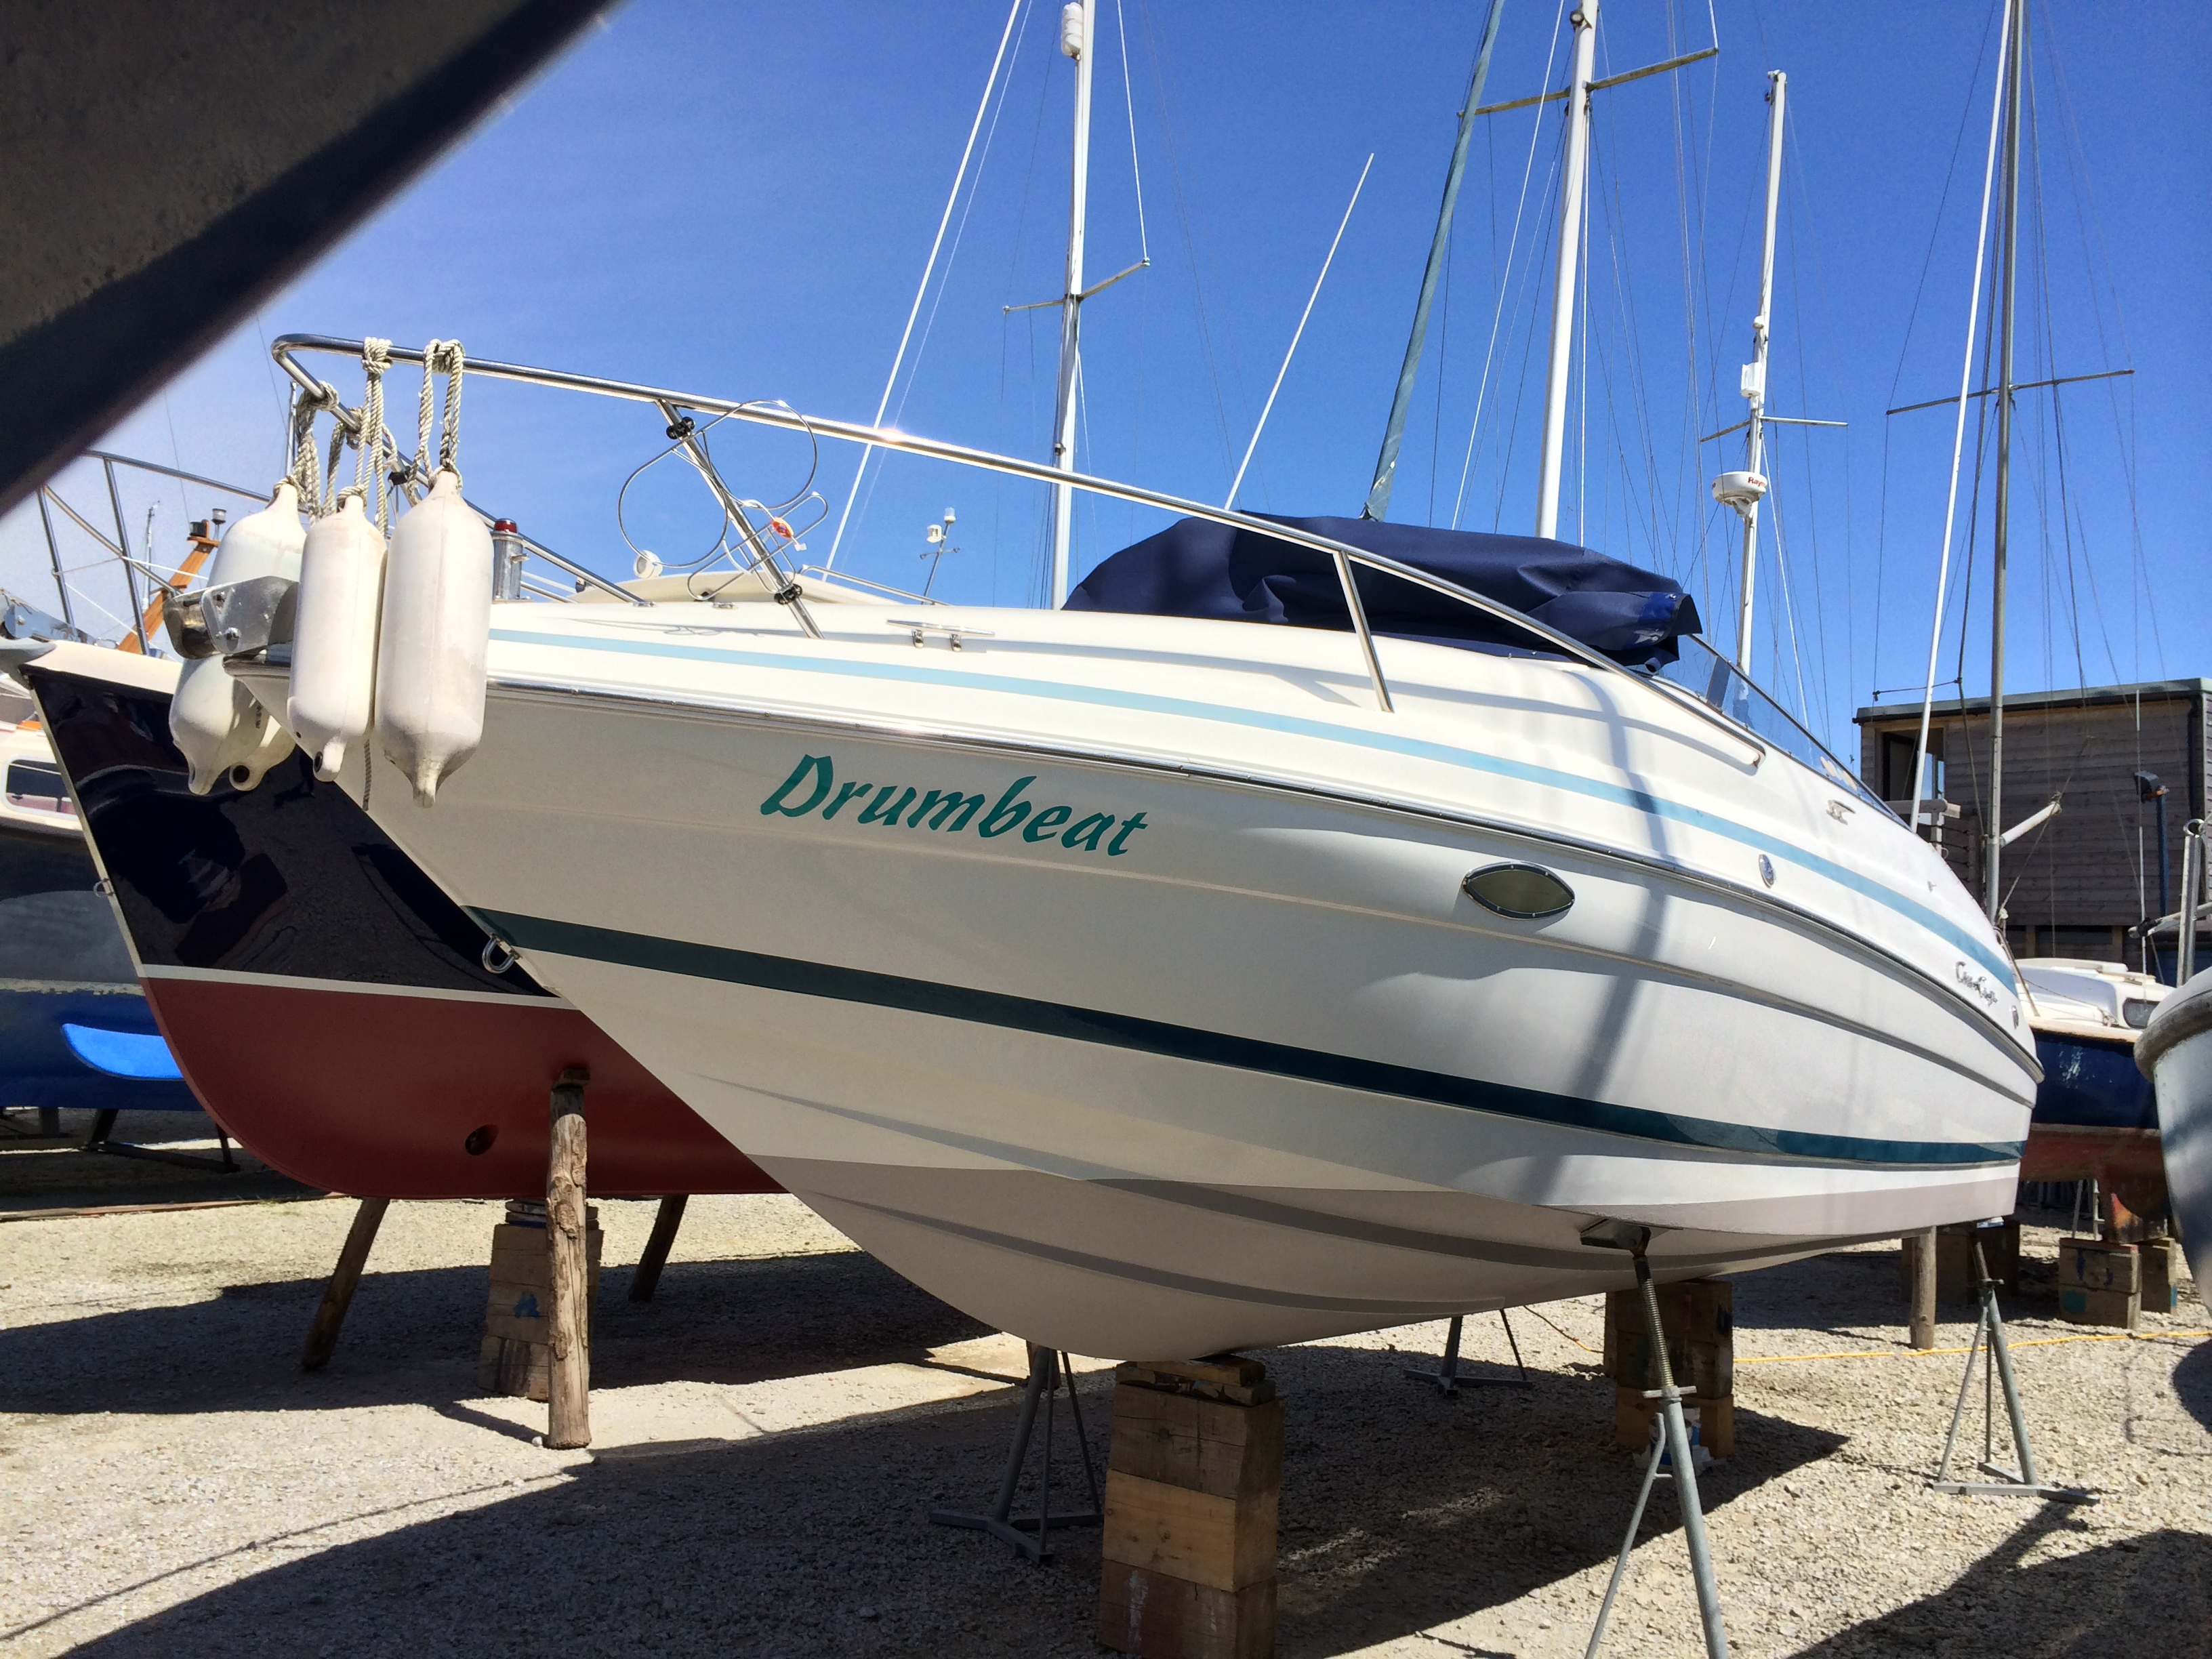 save viking cabin washington boats double cruiser this yacht motor cabins in for com sale boat